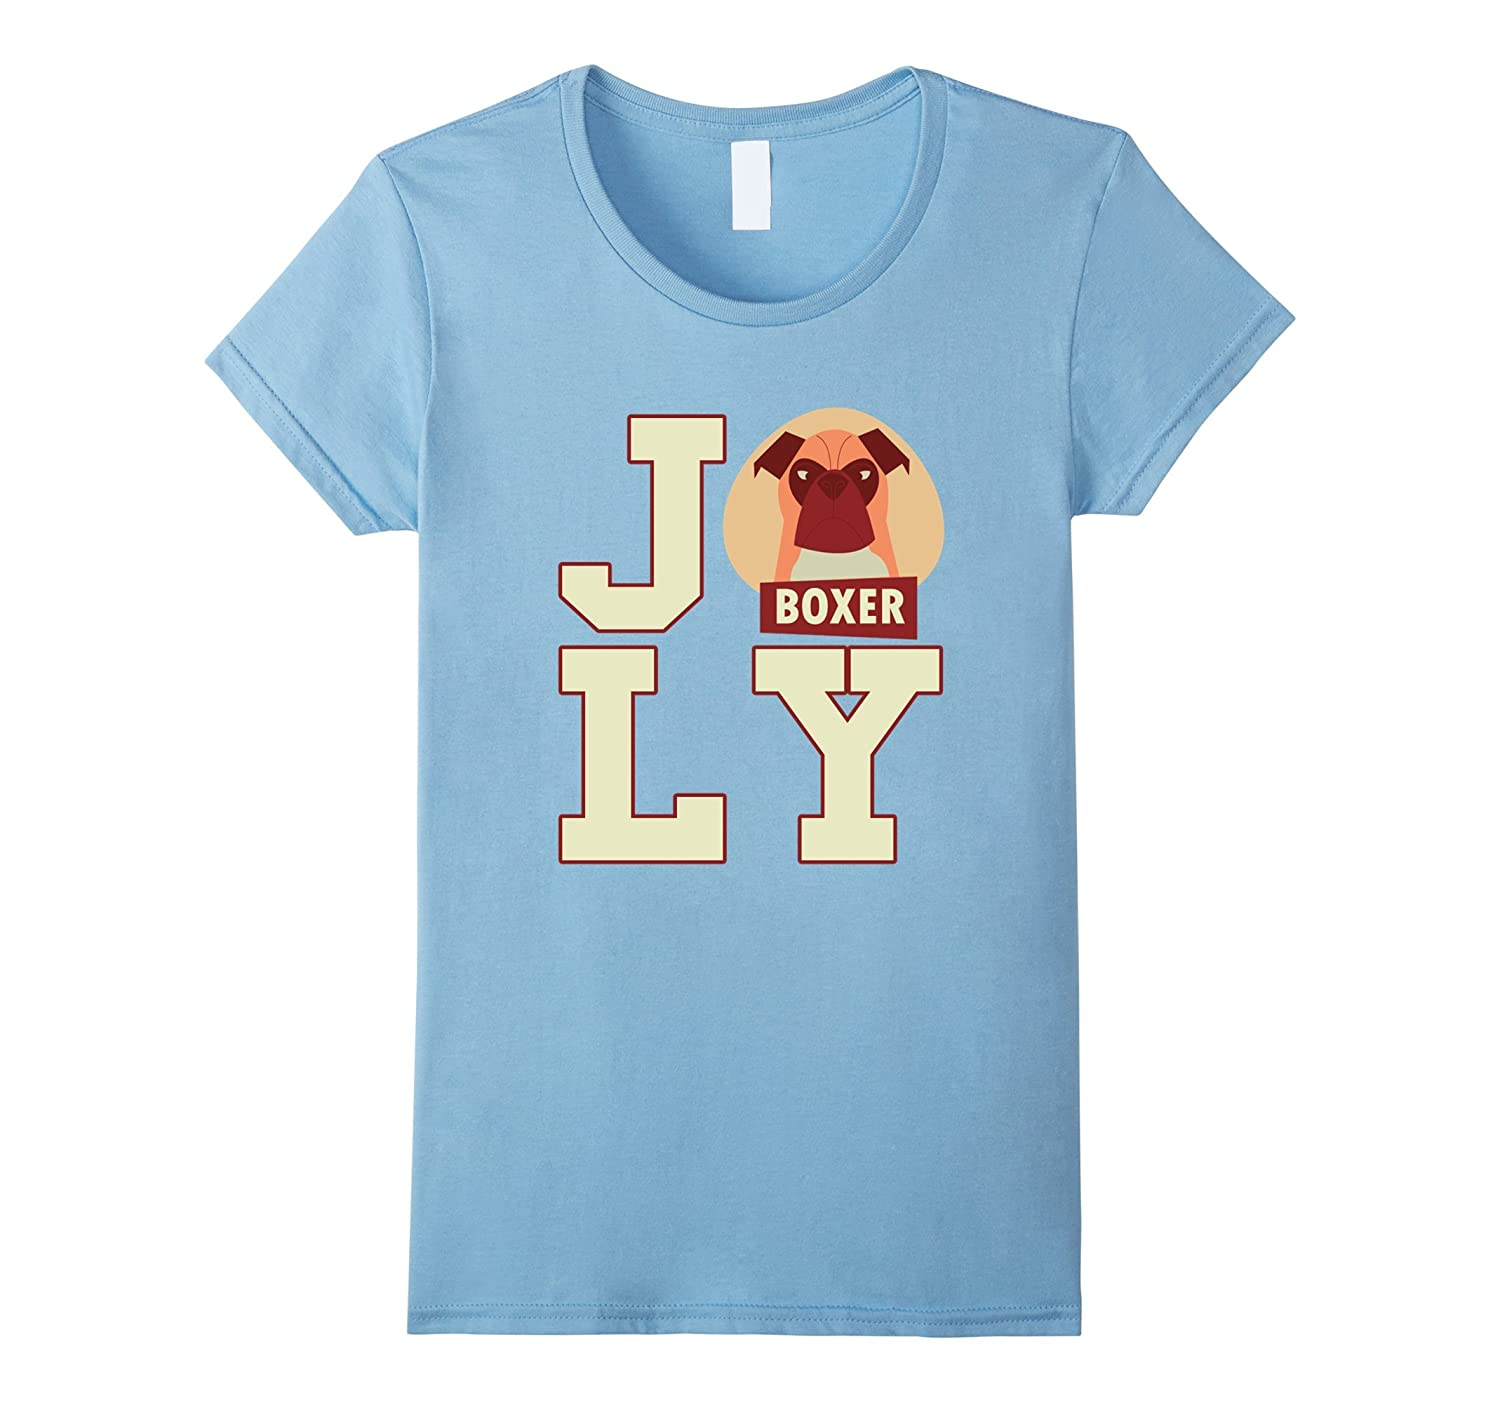 4th Of July Independence Day USA Pet Owner Dog Boxer T Shirt